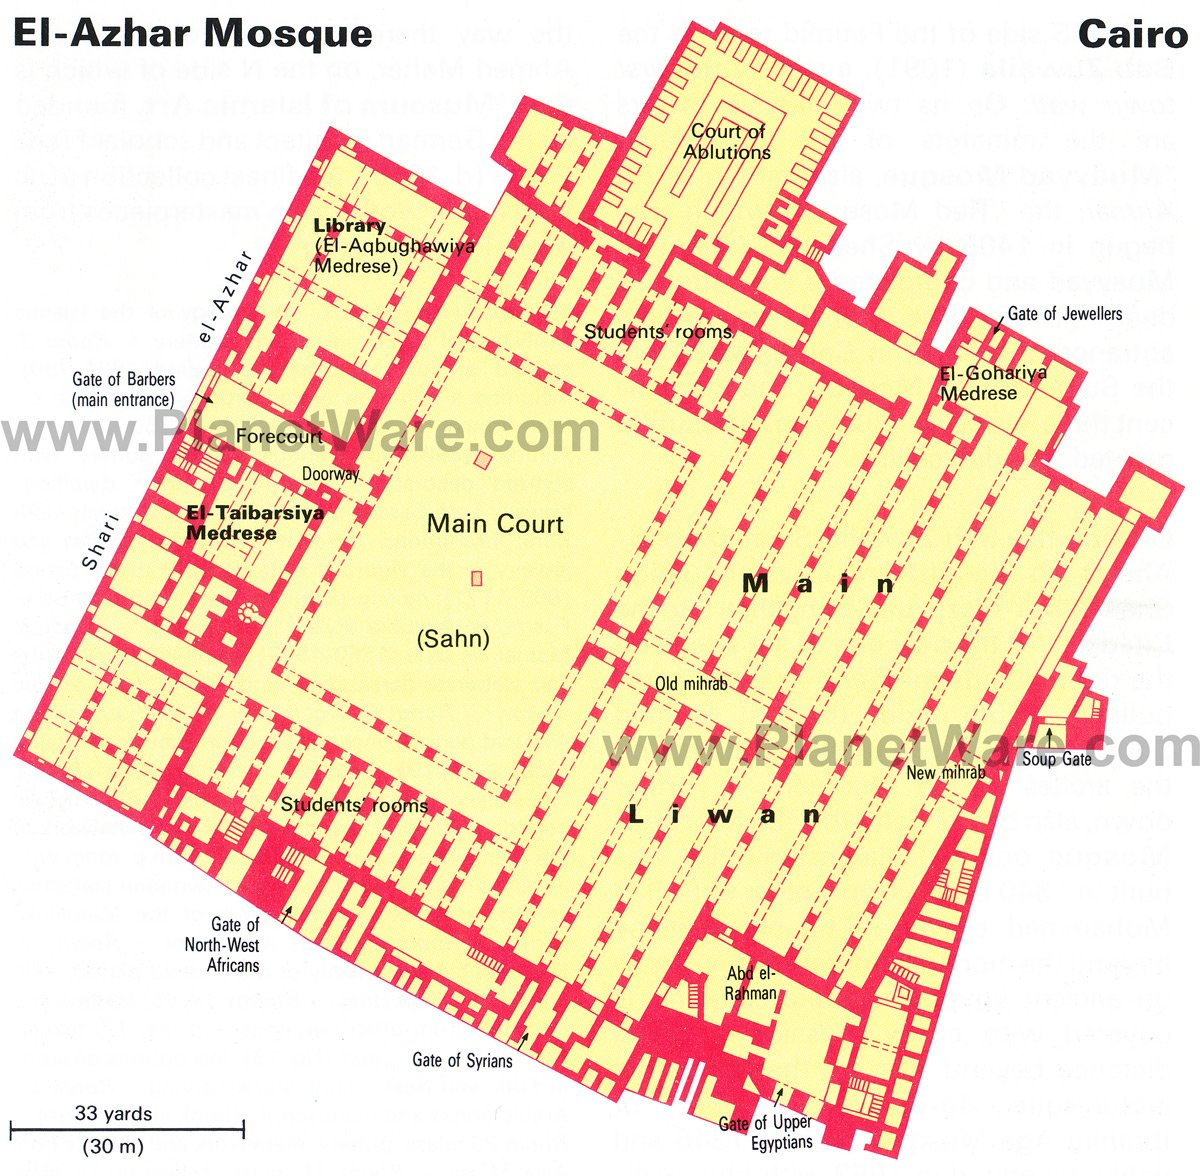 El-Azhar Mosque - Floor plan map